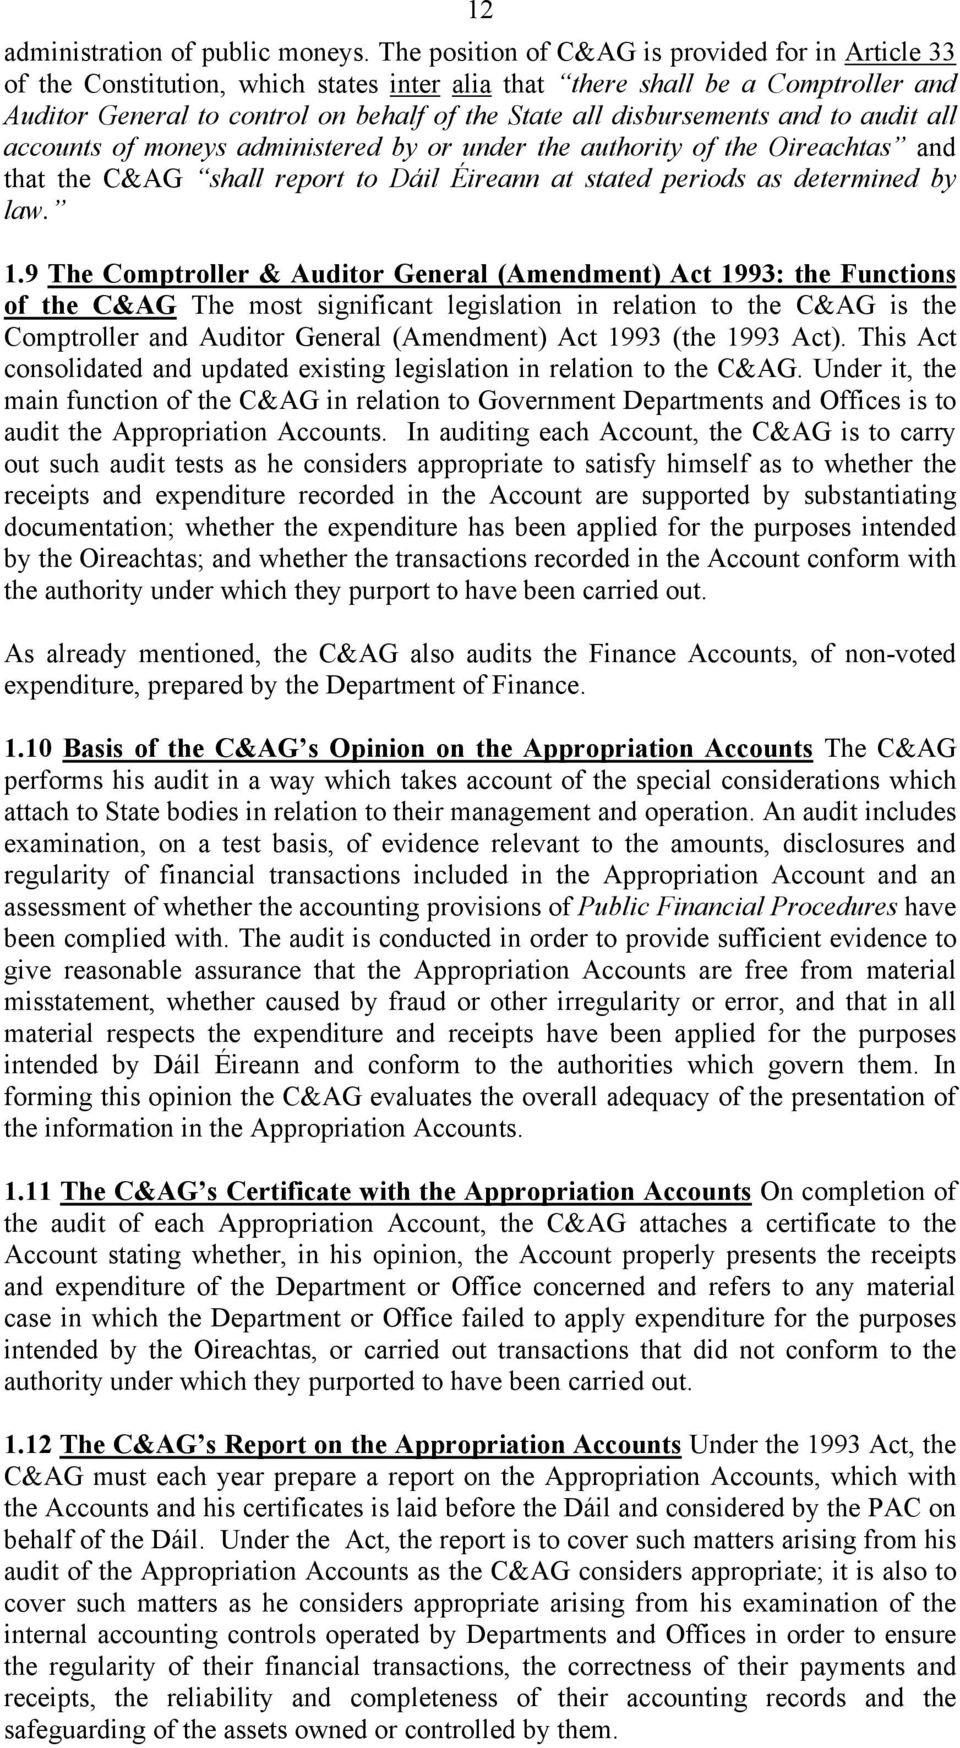 disbursements and to audit all accounts of moneys administered by or under the authority of the Oireachtas and that the C&AG shall report to Dáil Éireann at stated periods as determined by law. 1.